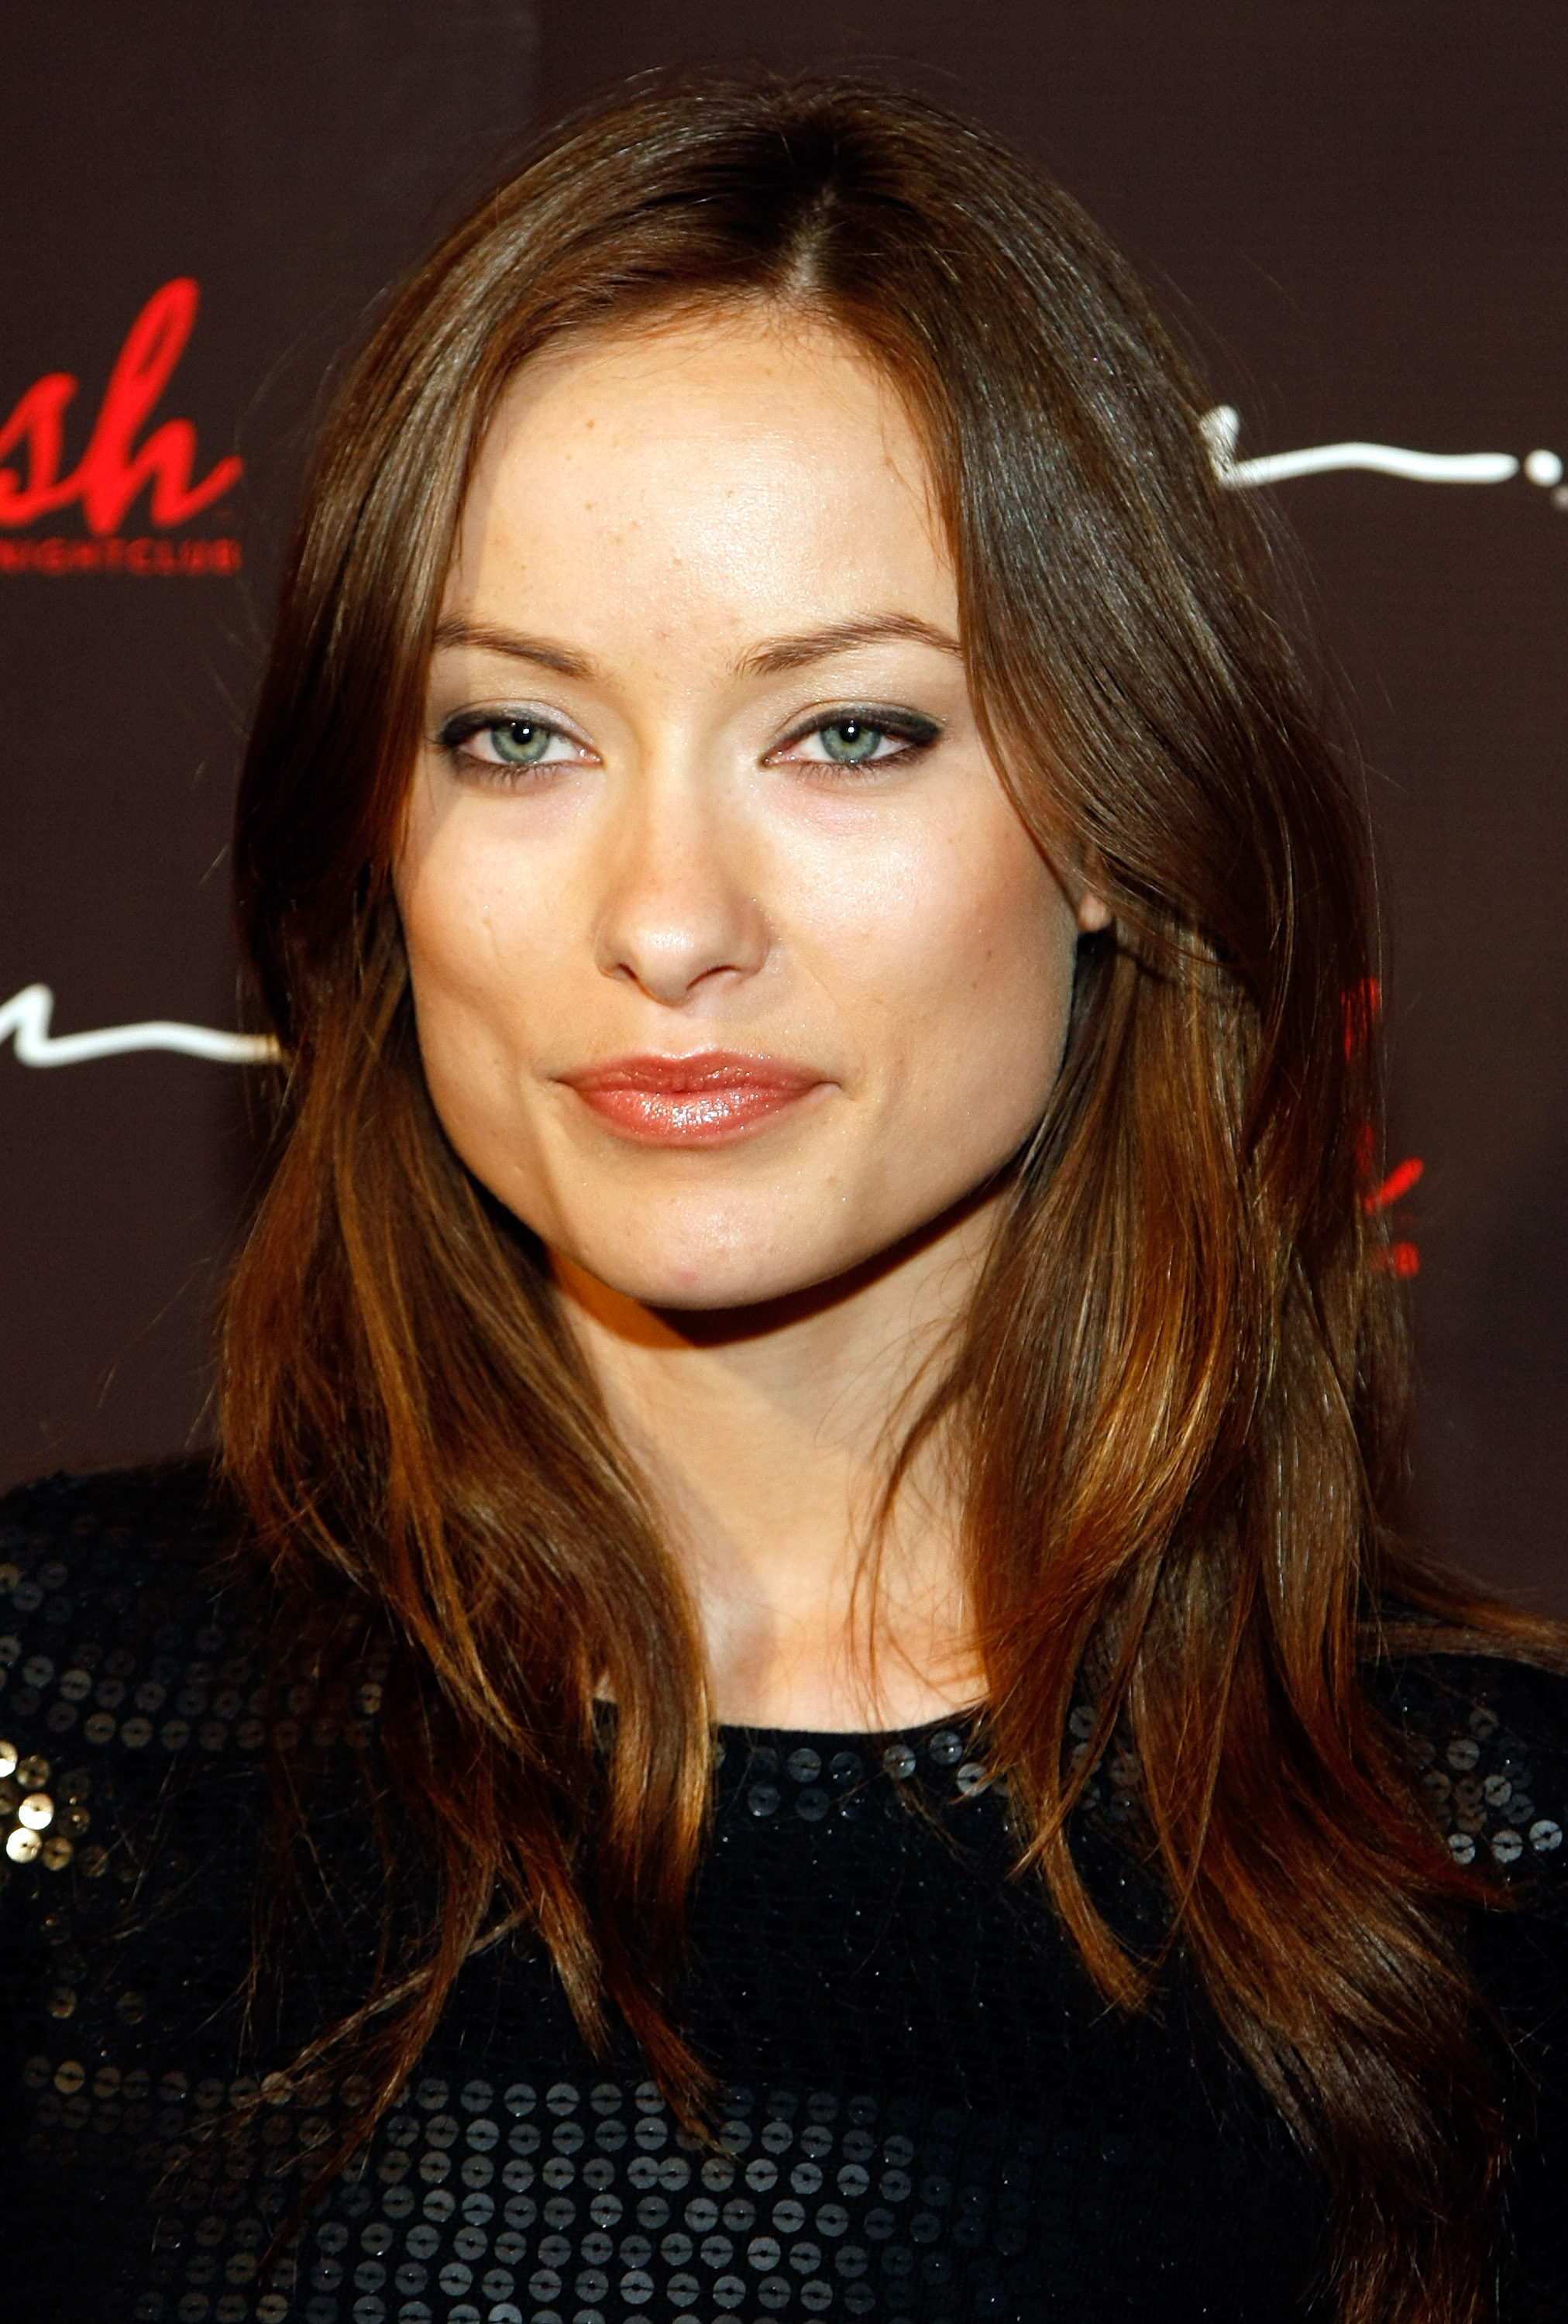 09932_Celebutopia-Olivia_Wilde-Blush_Boutique_Nightclub94s_One-Year_Anniversary-04_122_944lo.jpg